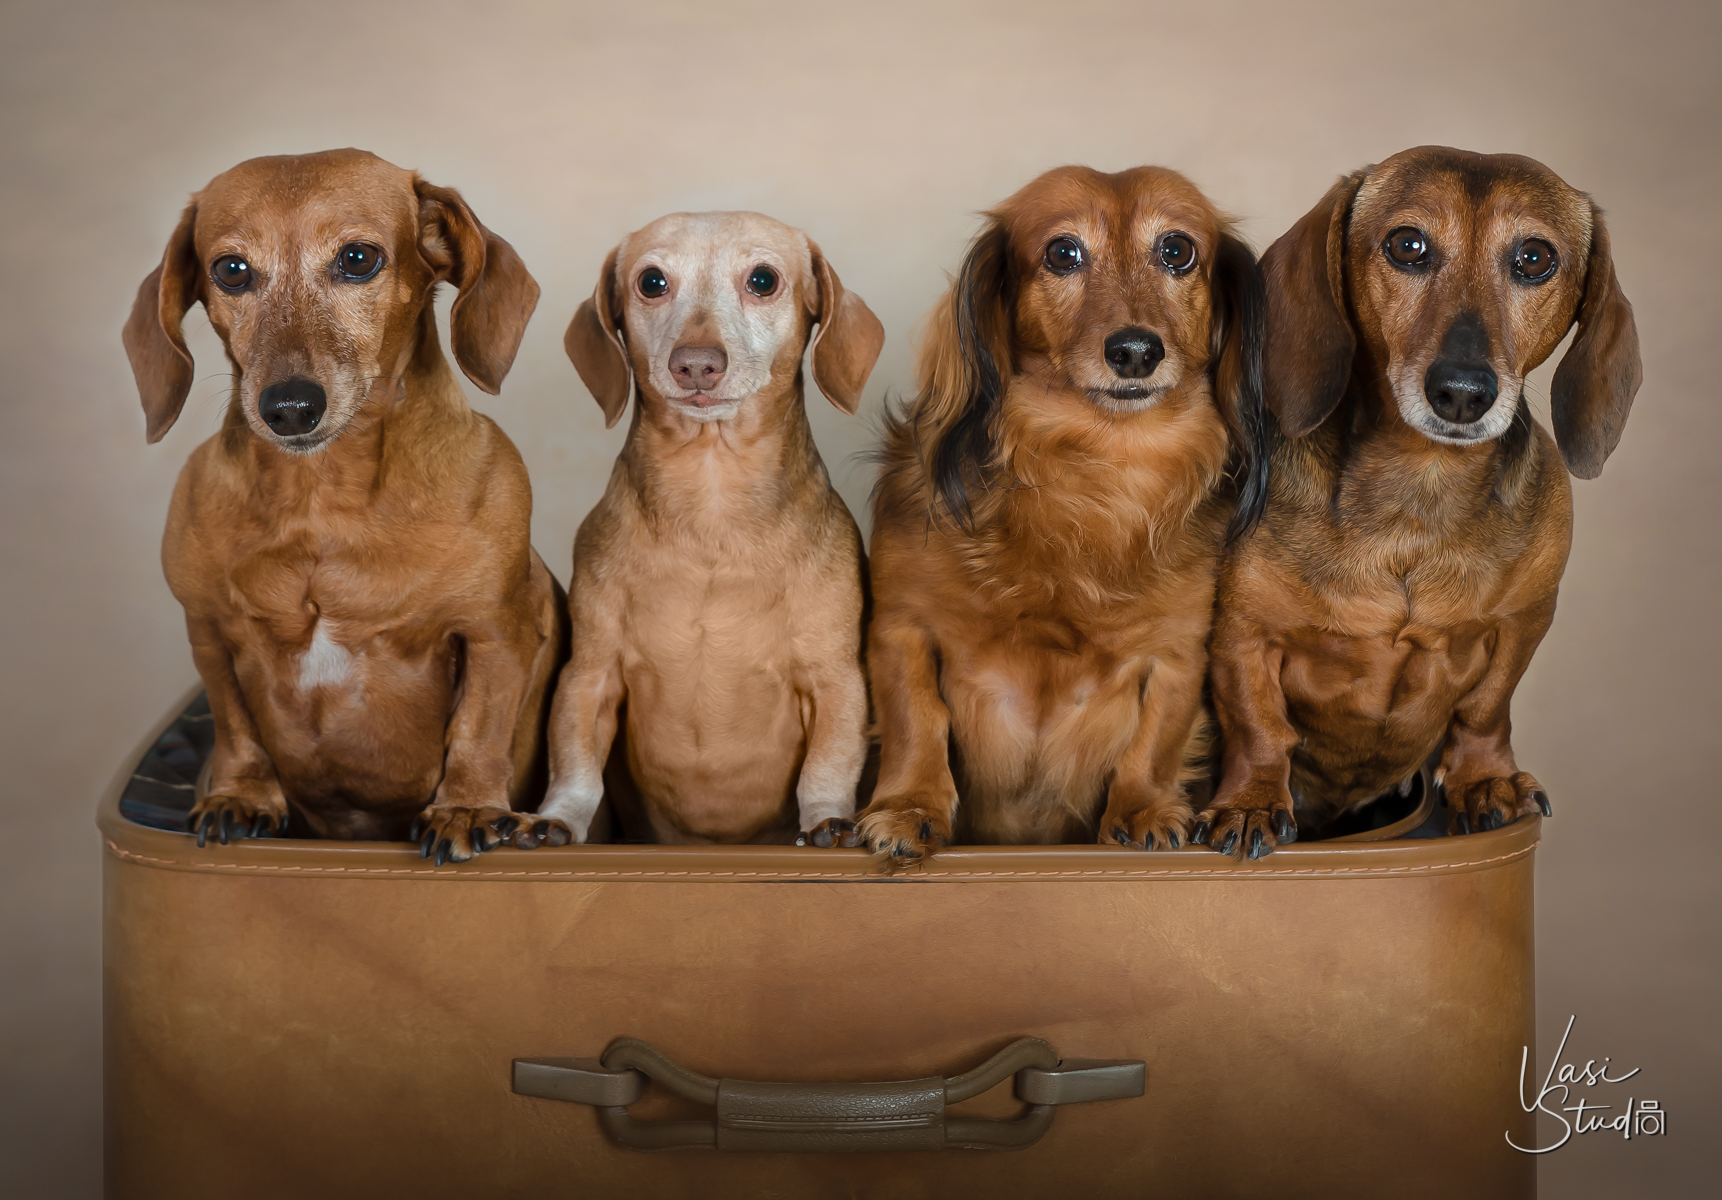 4 doggies, Vasi Studio is located in Palm Beach Gardens, FL.